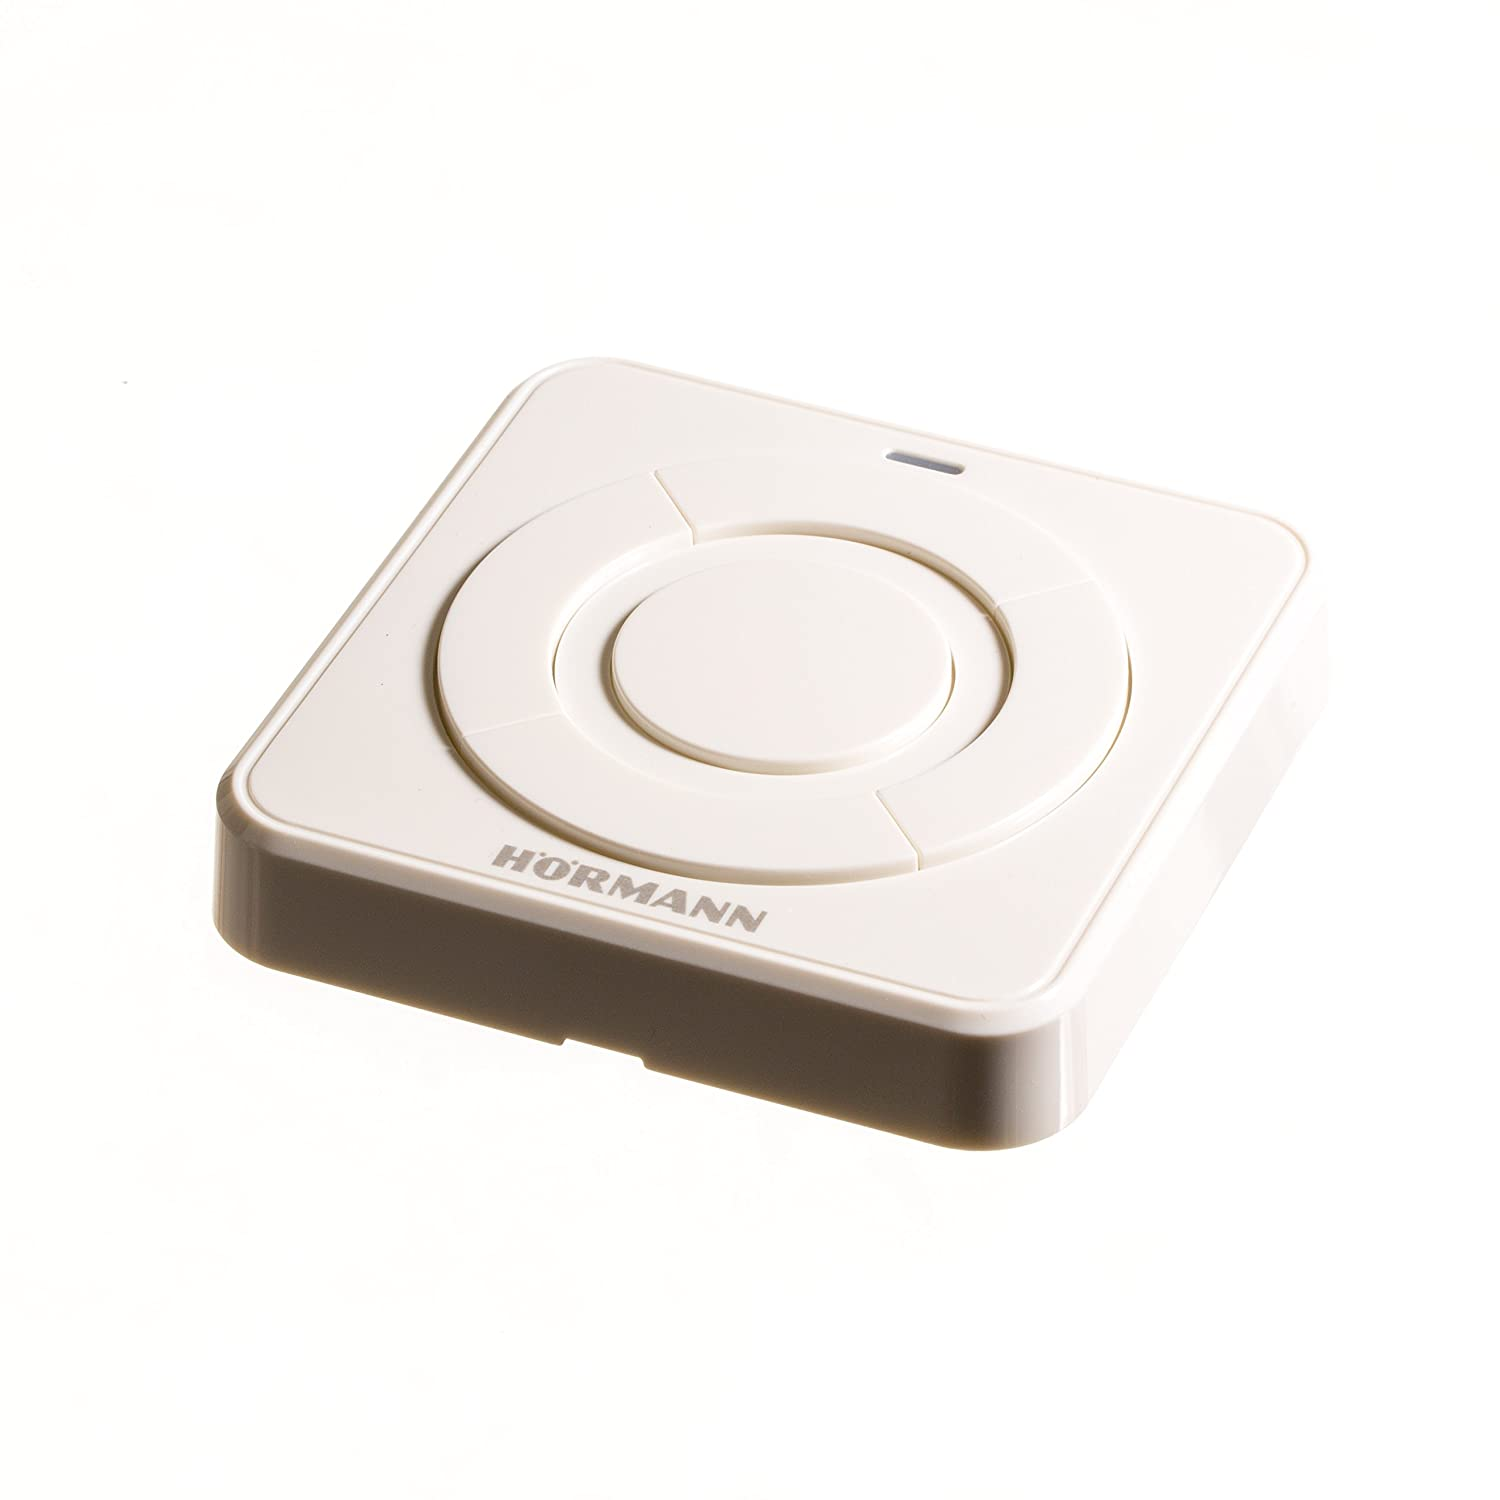 Hö rmann FIT 5 BS Radio Button Flush-Mounted 868 MHz BS - BiSecur Transmitter UP - Smart Home Wireless Internal Button Hörmann